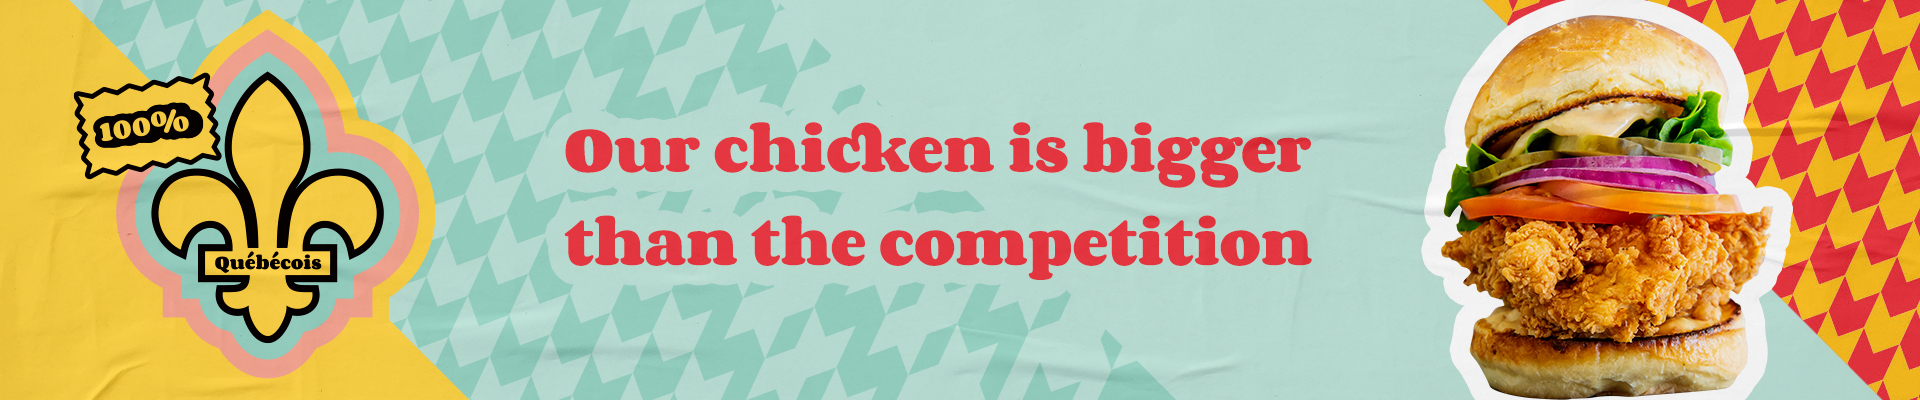 Our chicken is bigger than the competition